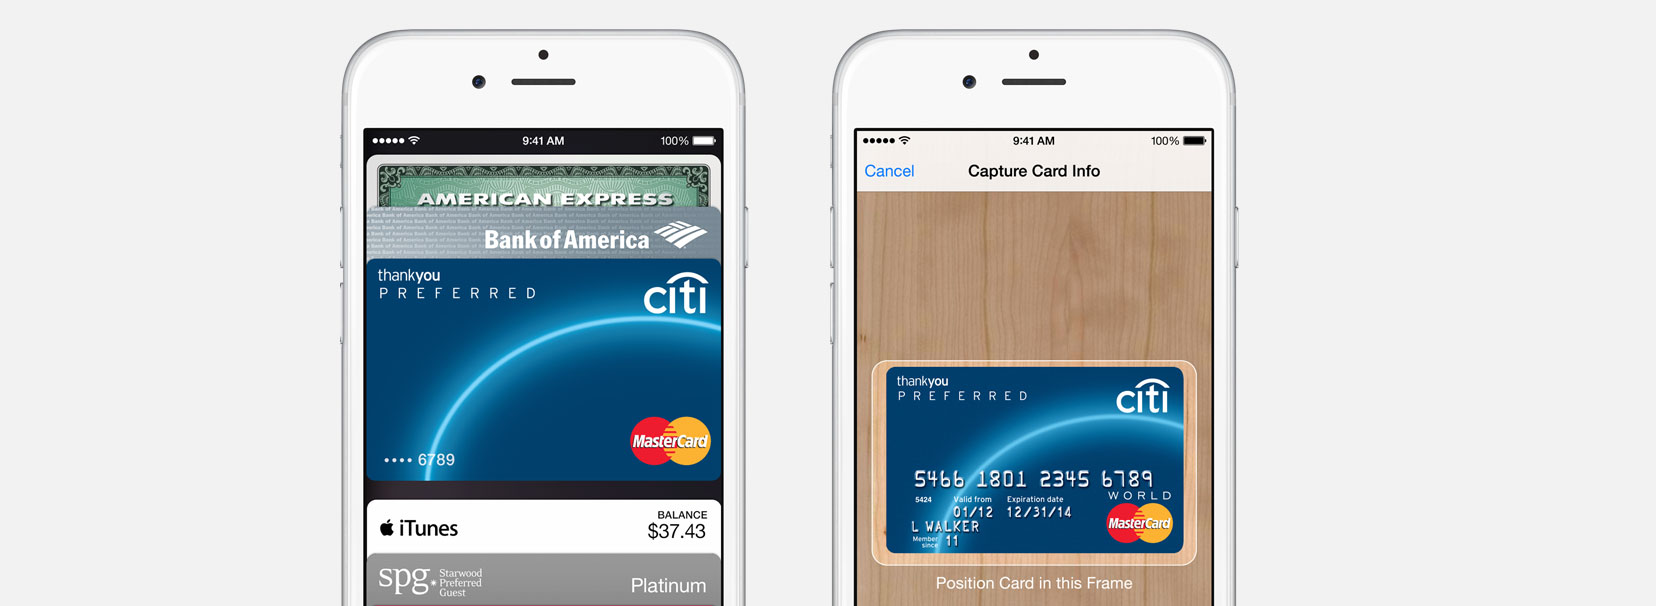 Apple Pay will soon be enabled for users of federal payment cards